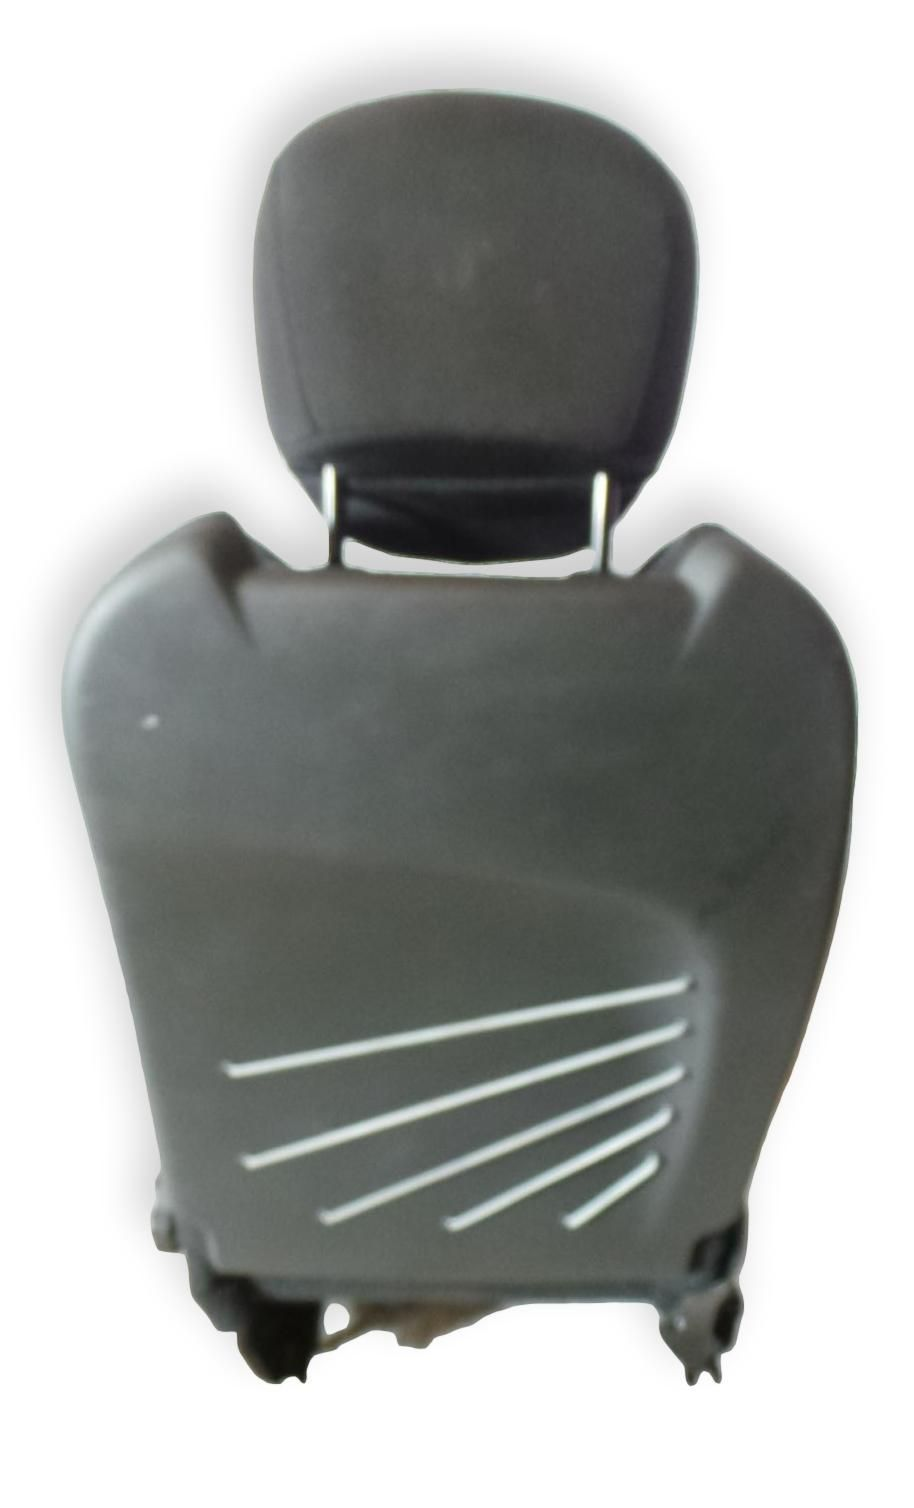 a description of a legislative mandate to wear seat belts An act to amend section 63-2-1, mississippi code of 1972, to mandate that the operator and all passengers under the age of 18 who are not required to use a child passenger restraint system.